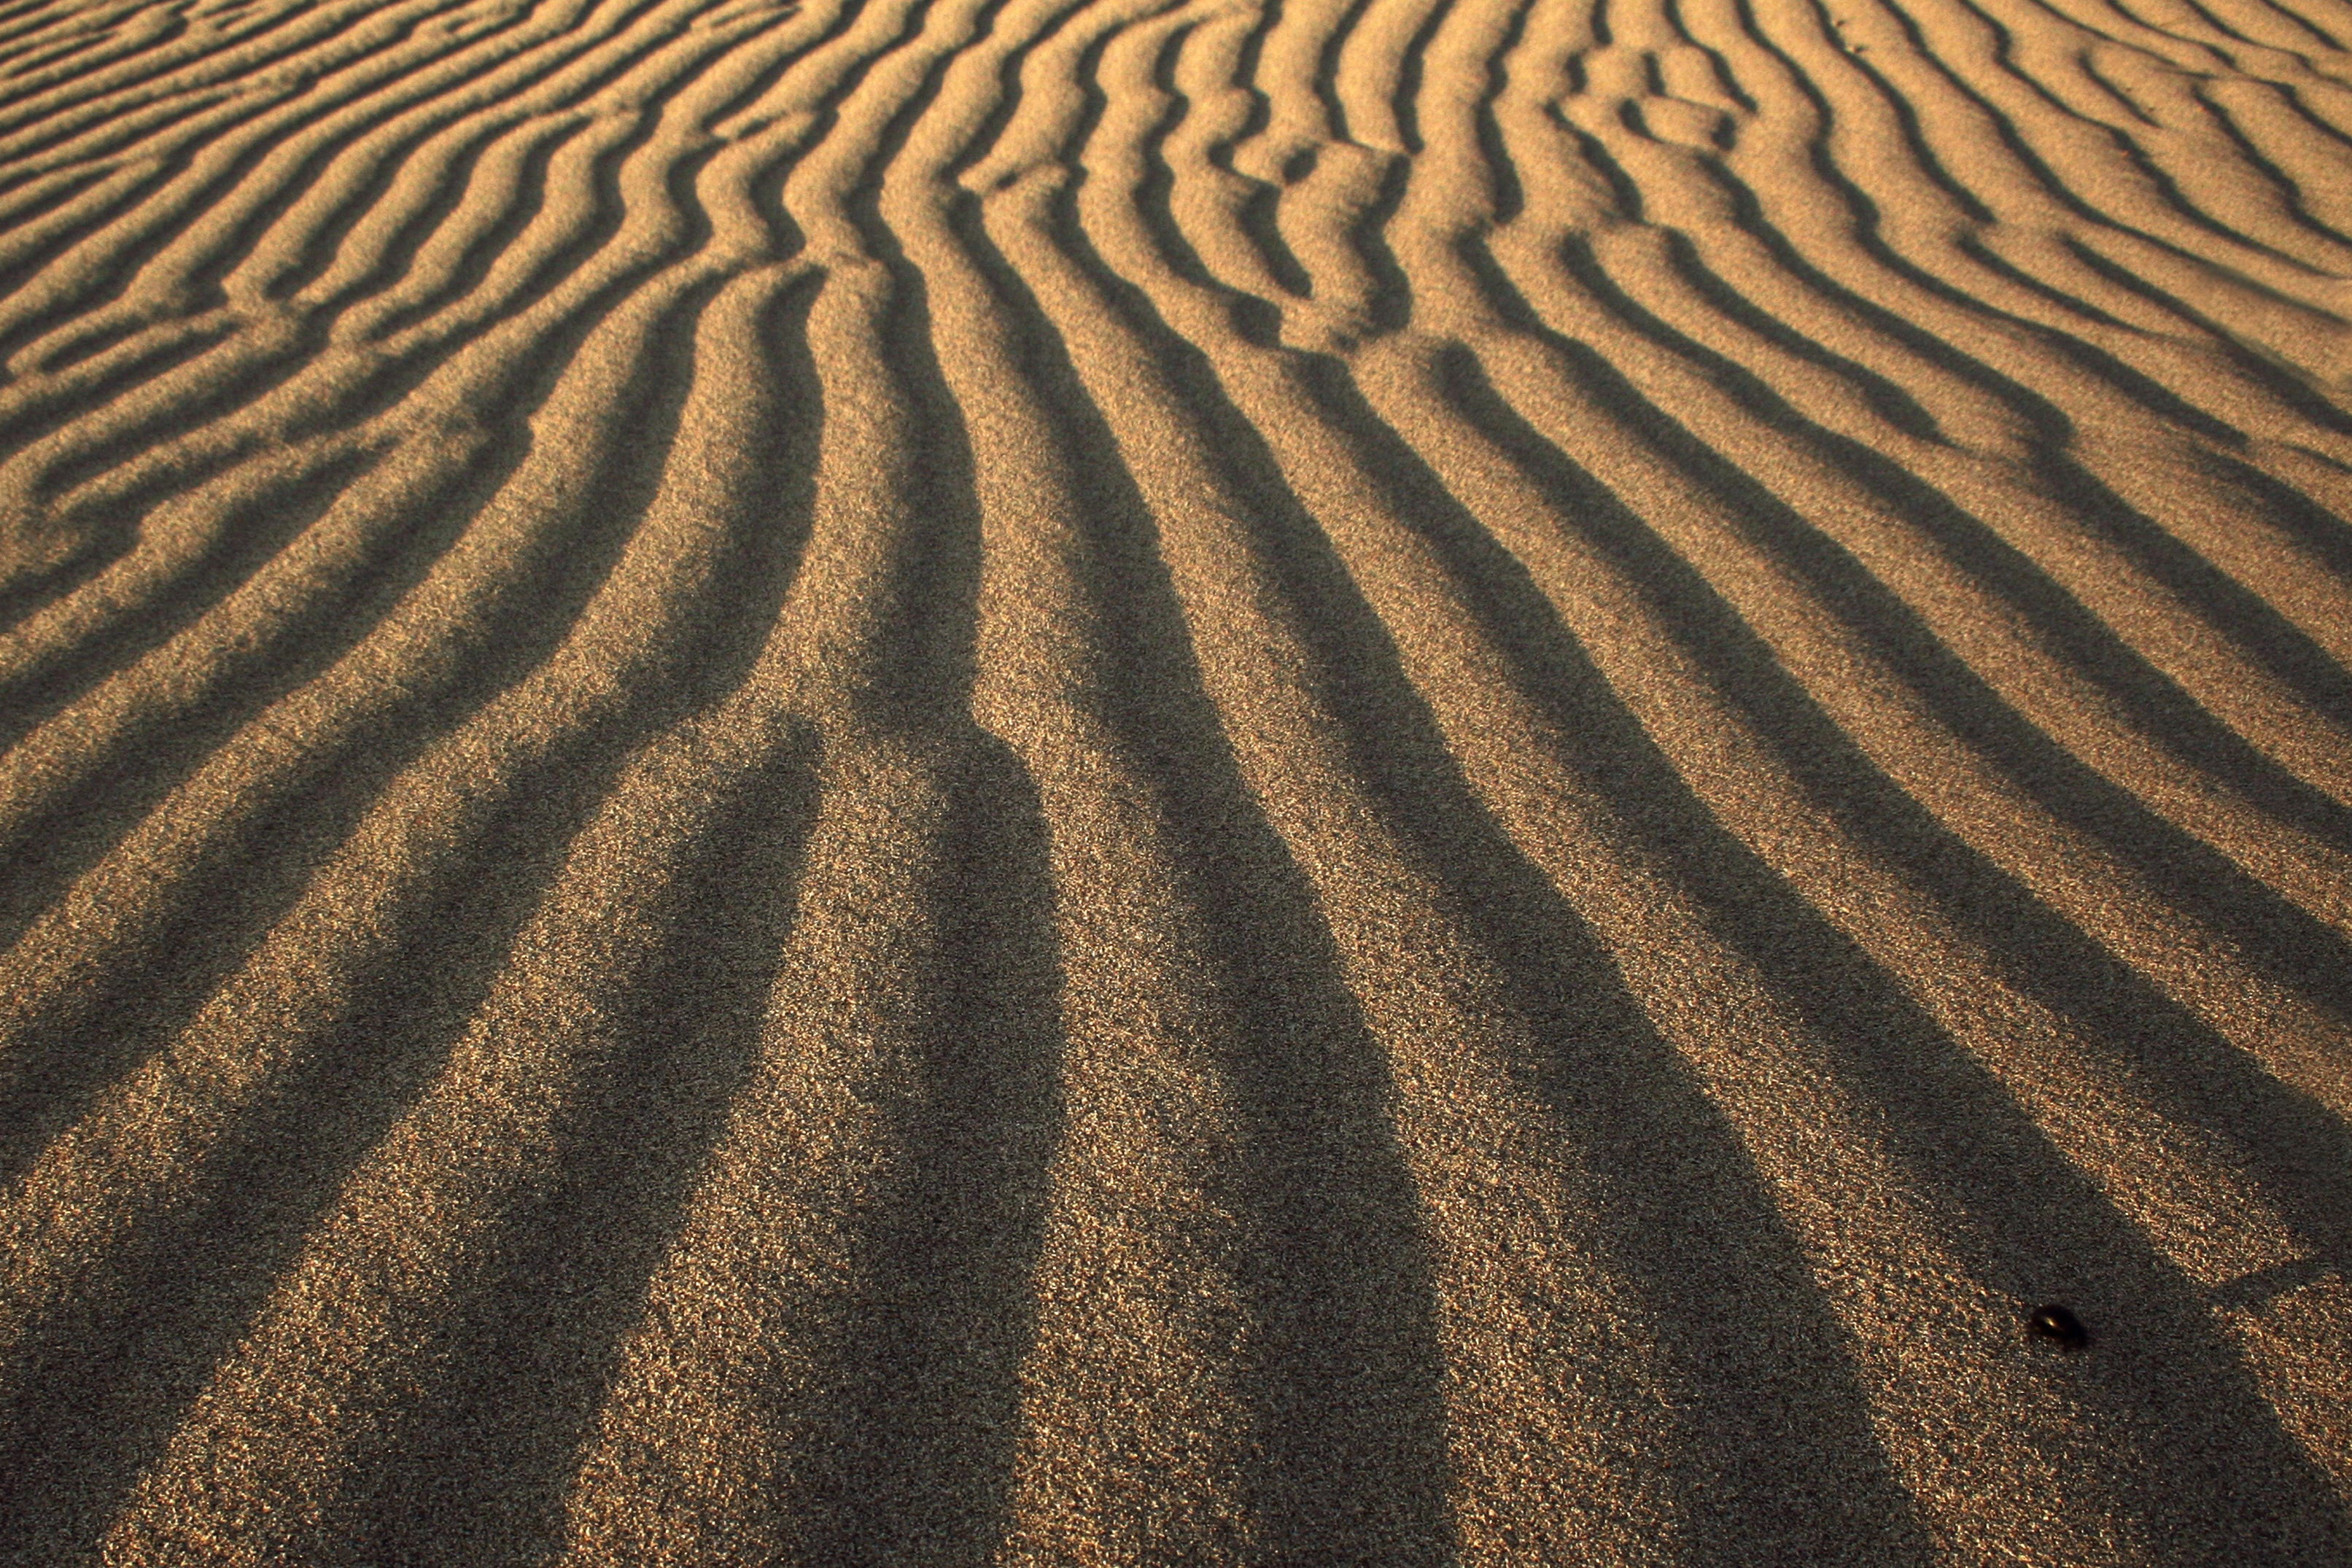 photo of desert dunes